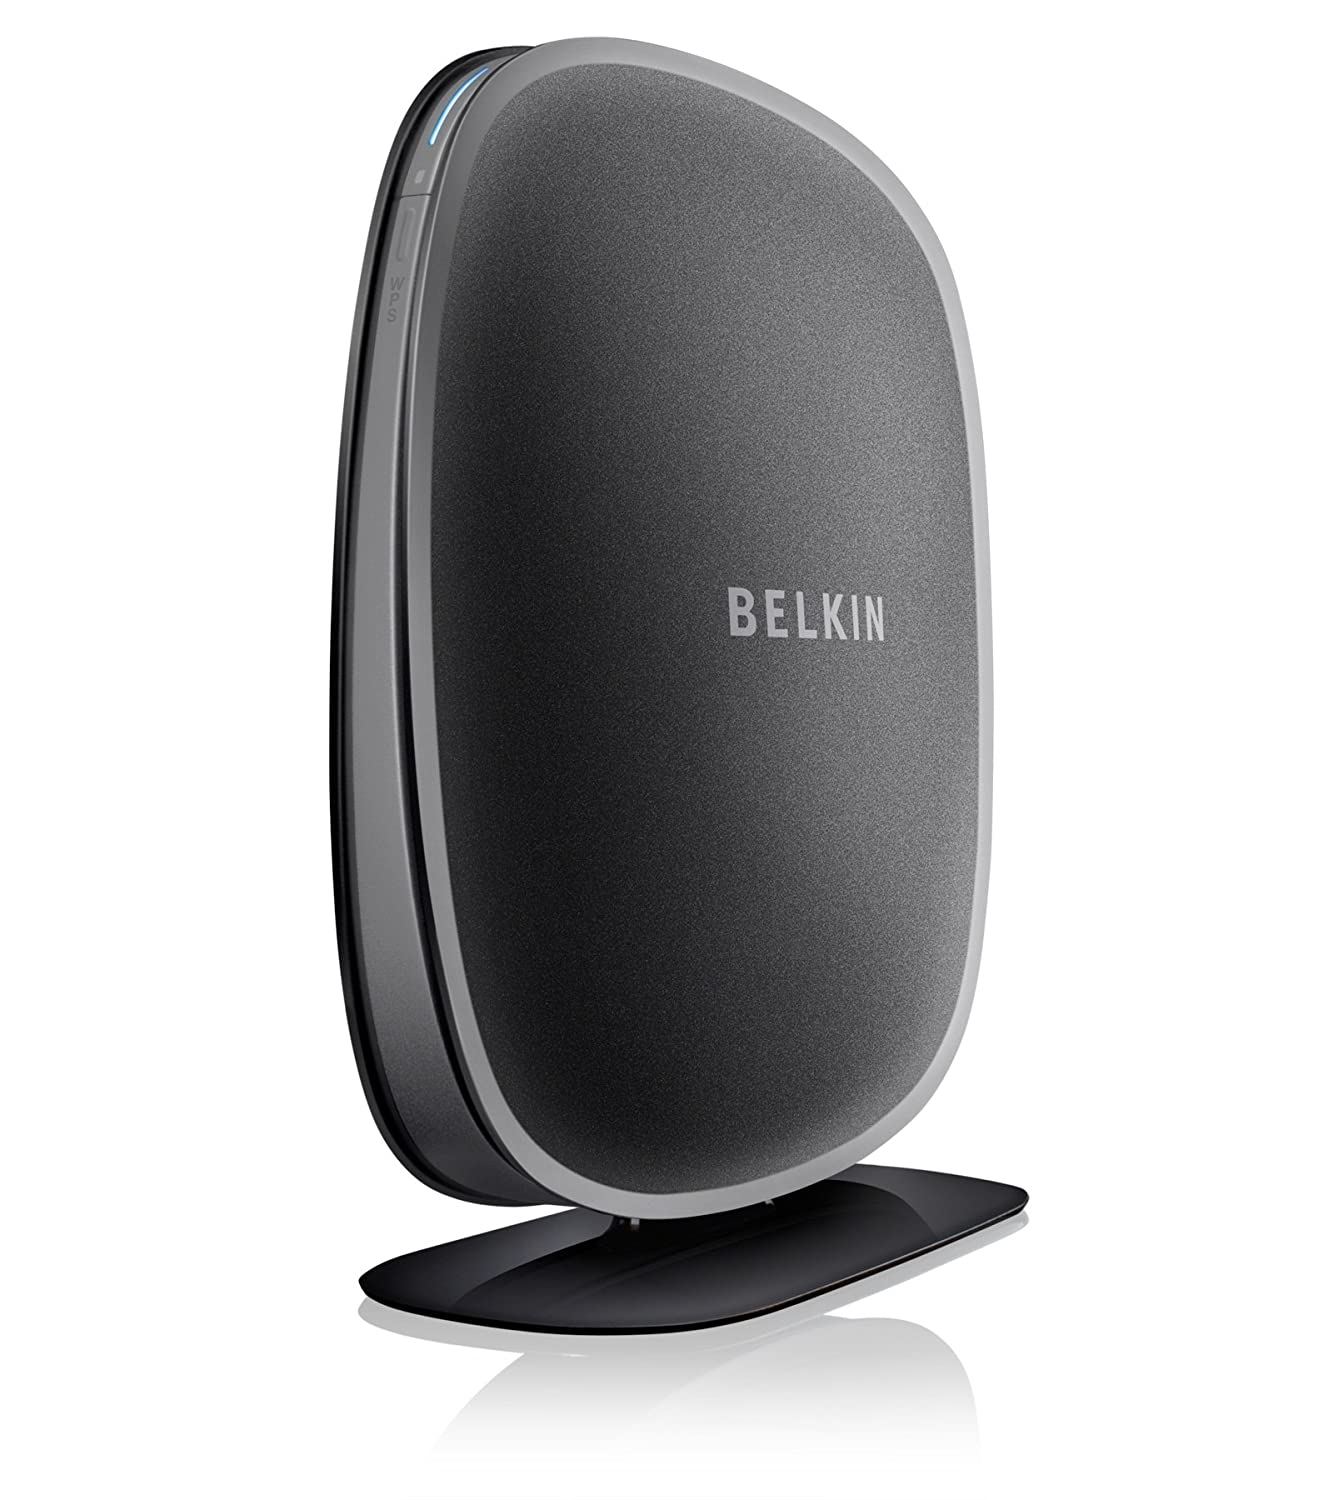 Belkin Wireless N450